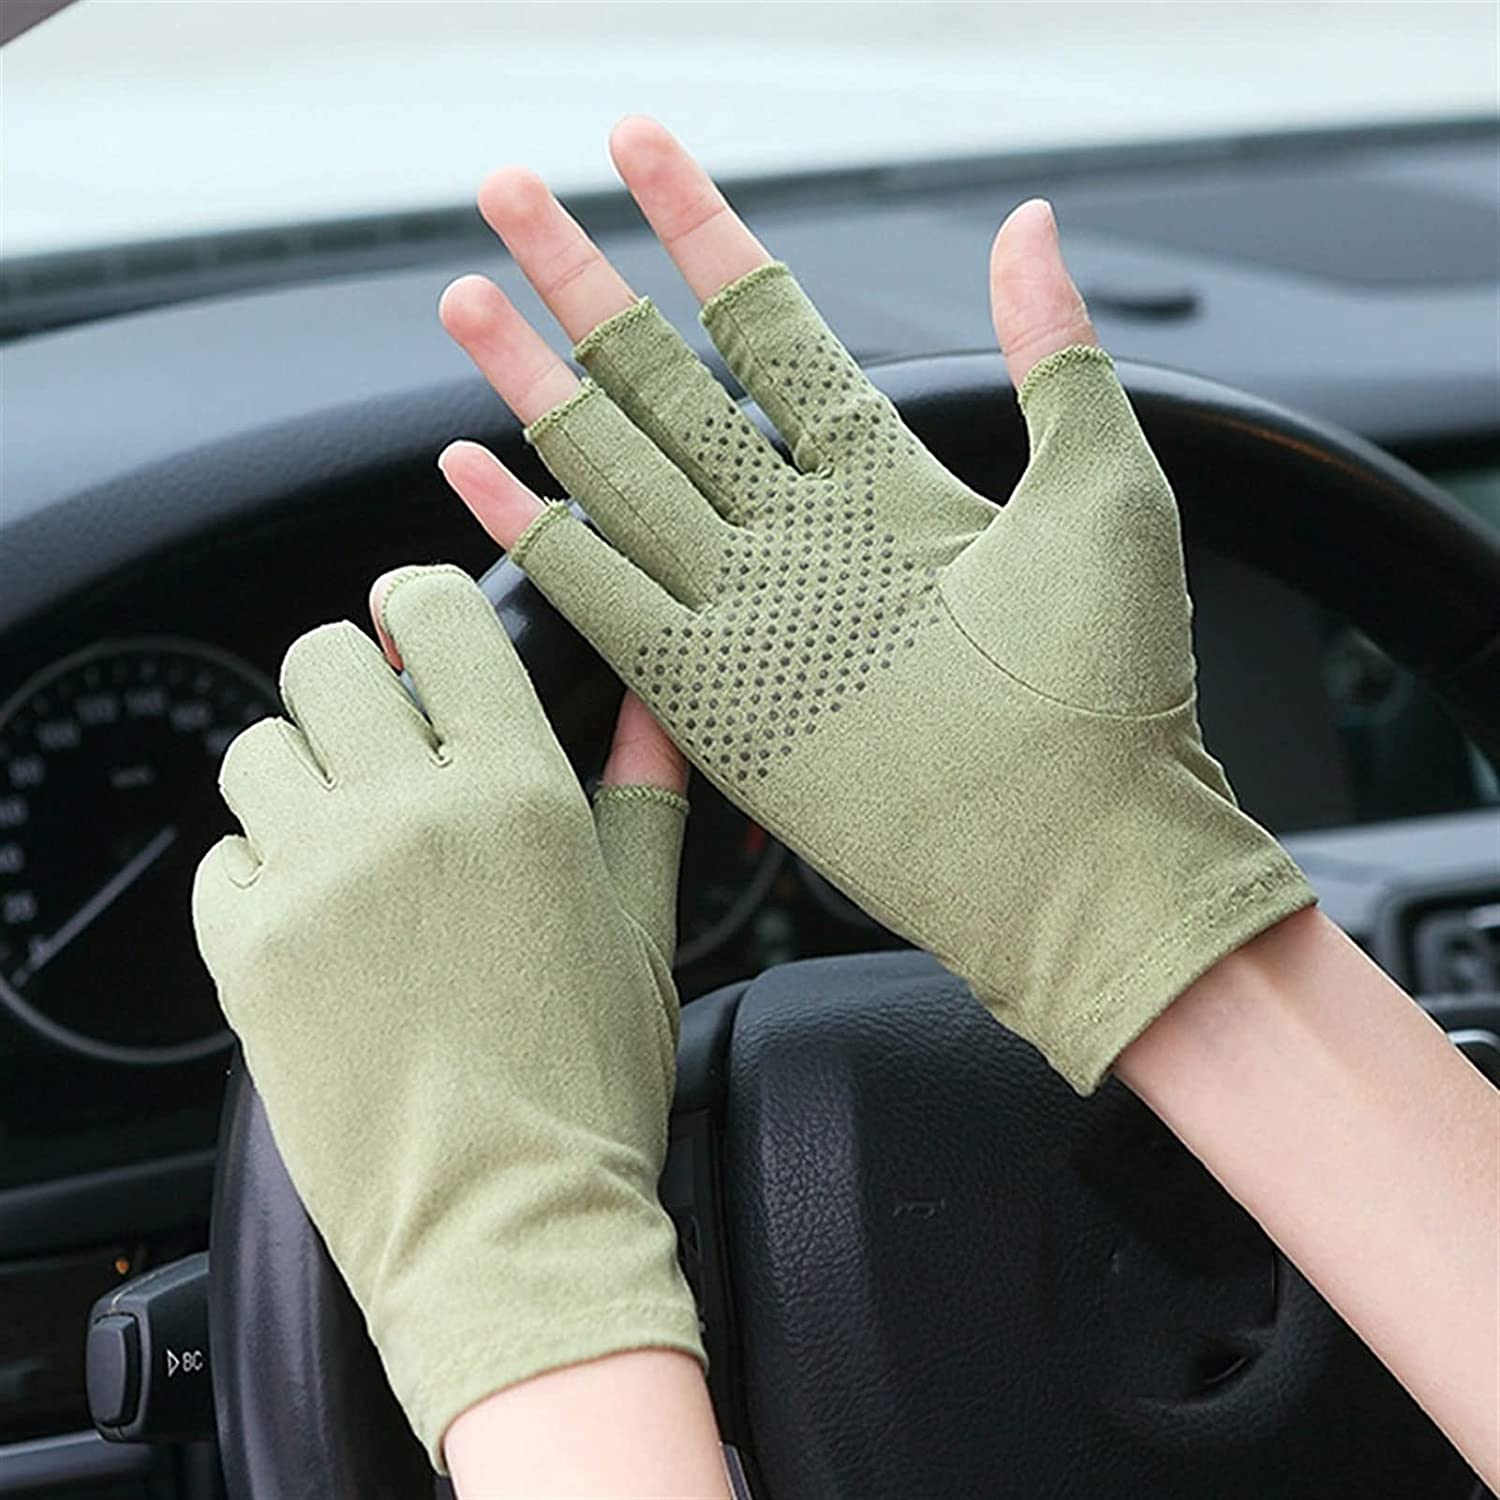 UimimiU Men and Women Spring and Summer Suede Non-Slip Gloves Cycling Driving Half-Finger Gloves Unisex Touch Screen Gloves Driving Sunscreen Anti-Skid Mittens (Color : Green, Size : 21cm)